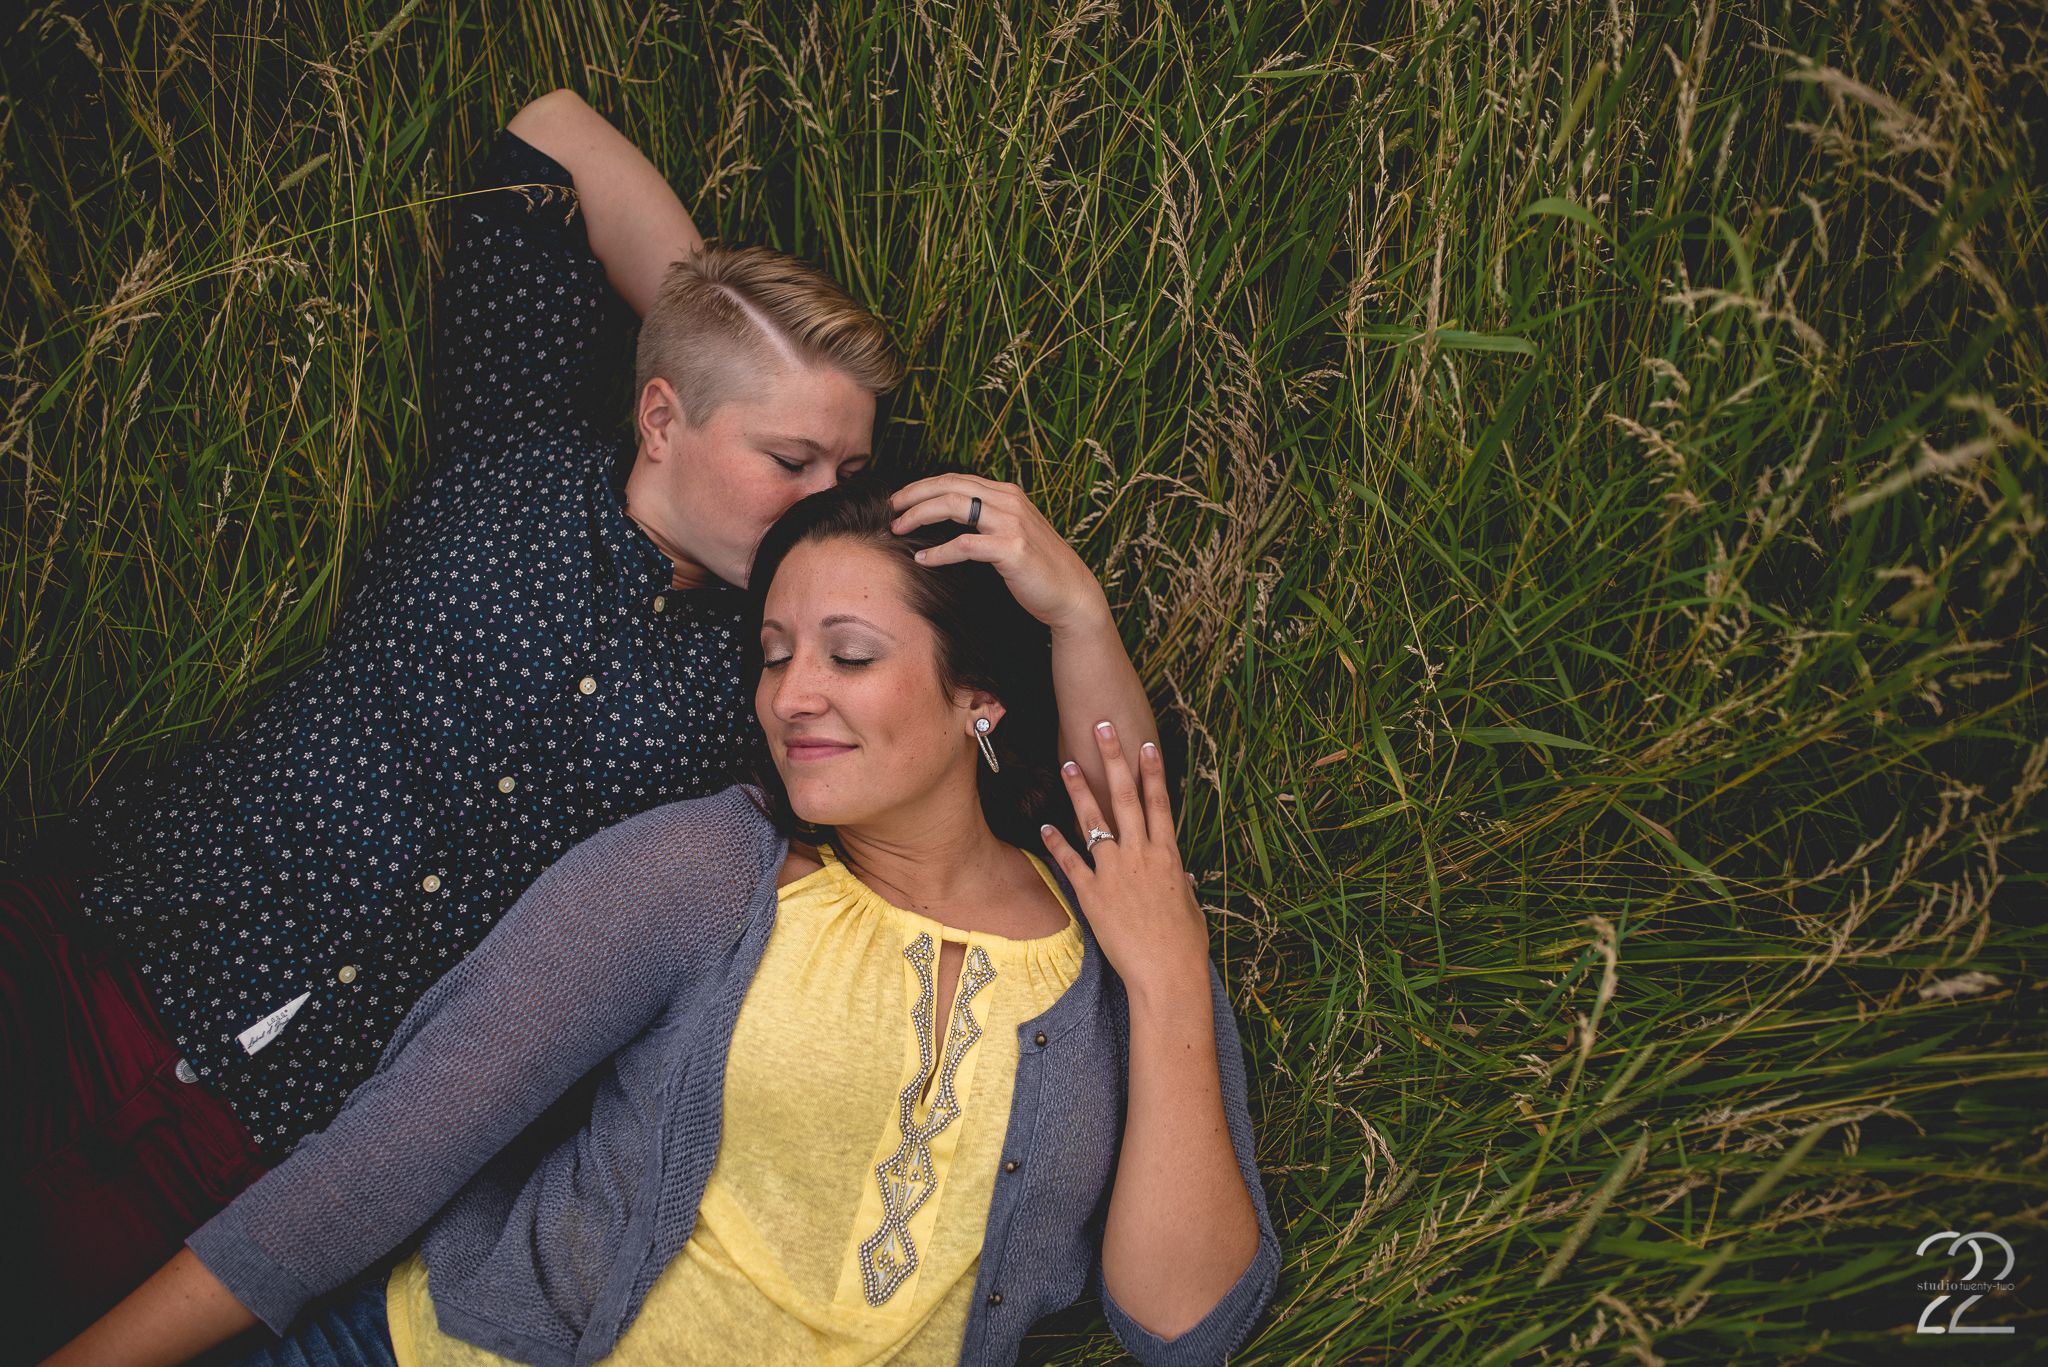 Kaity + Emily | Engagement Photography | Pinterest | Engagement ...